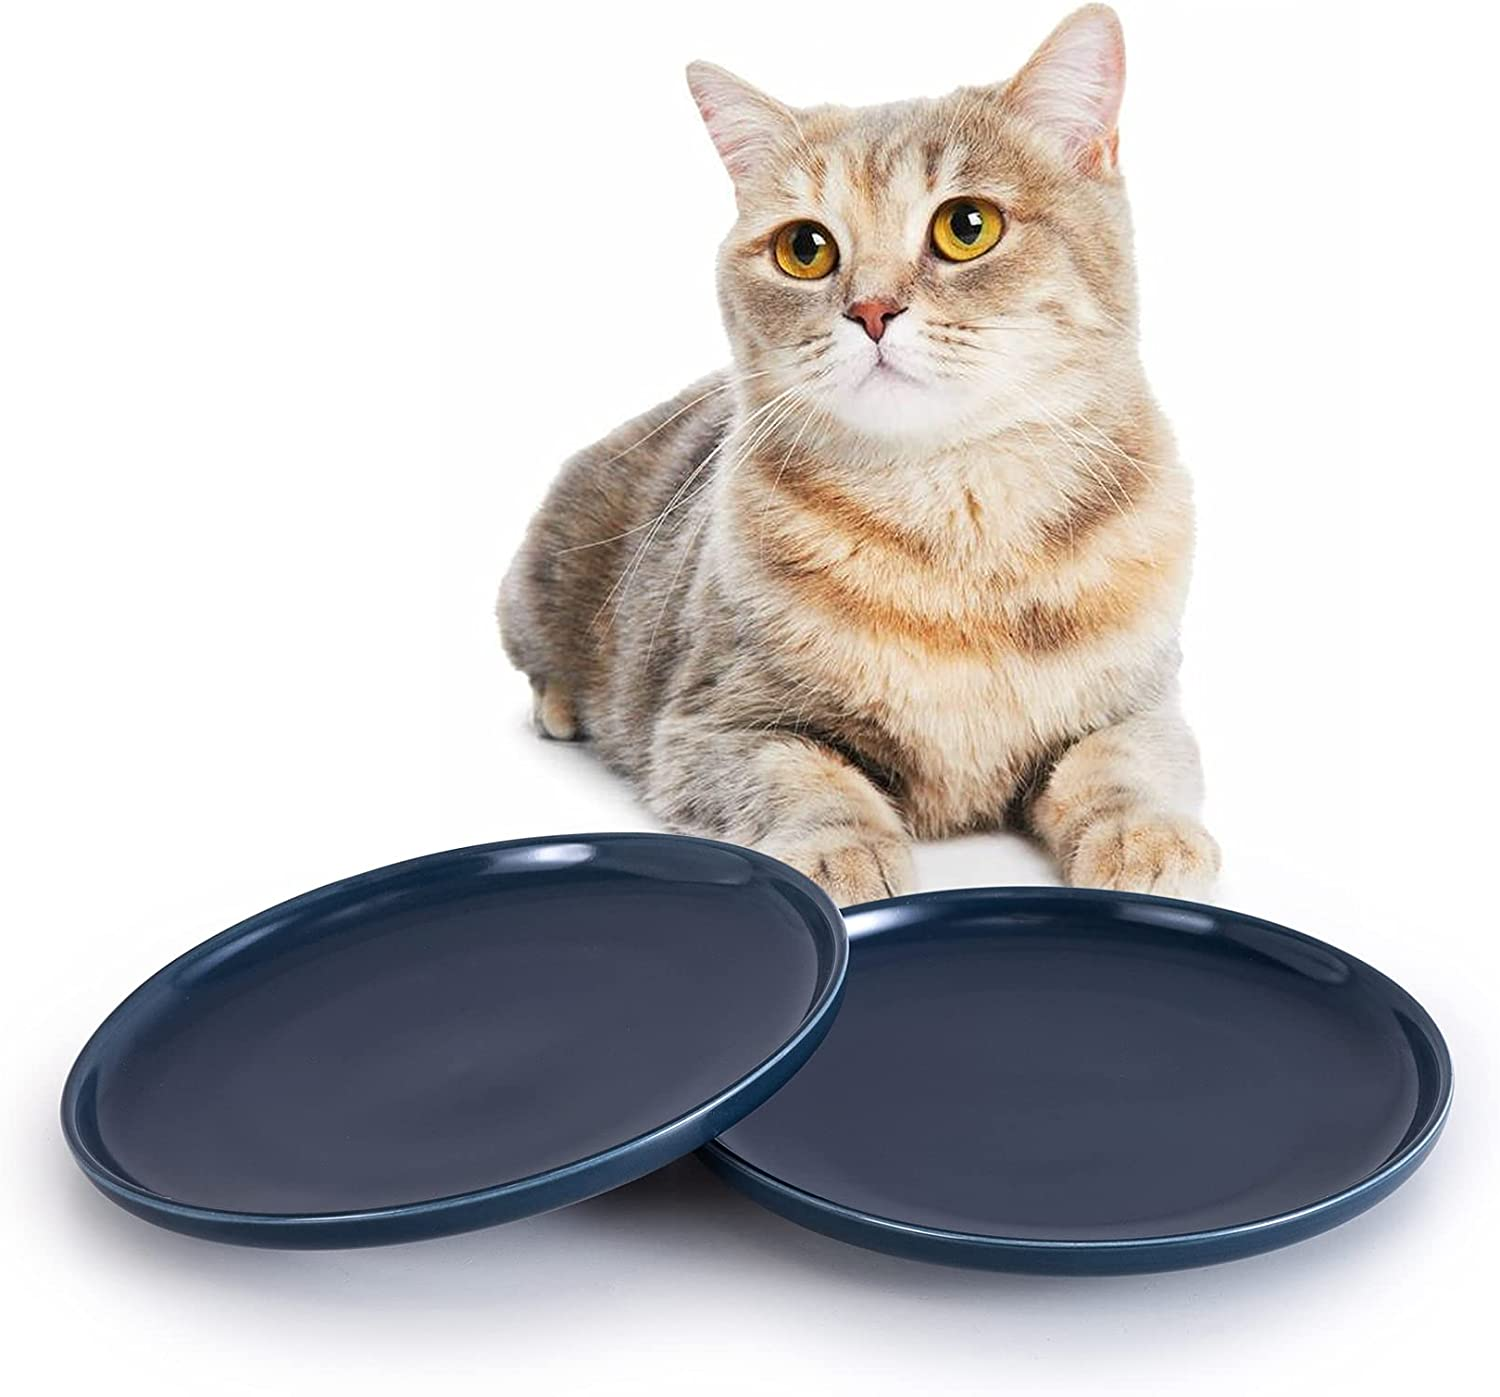 SIDUCAL Ceramic Shallow Cat Dish,8 Inch High-Capacity Non Slip Wide Cat Food Bowls,Whisker Fatigue Free Cat Food Dish,Cute Pet Plate for Cat,Dishwasher Safe(Sea Blue-2 Packs)